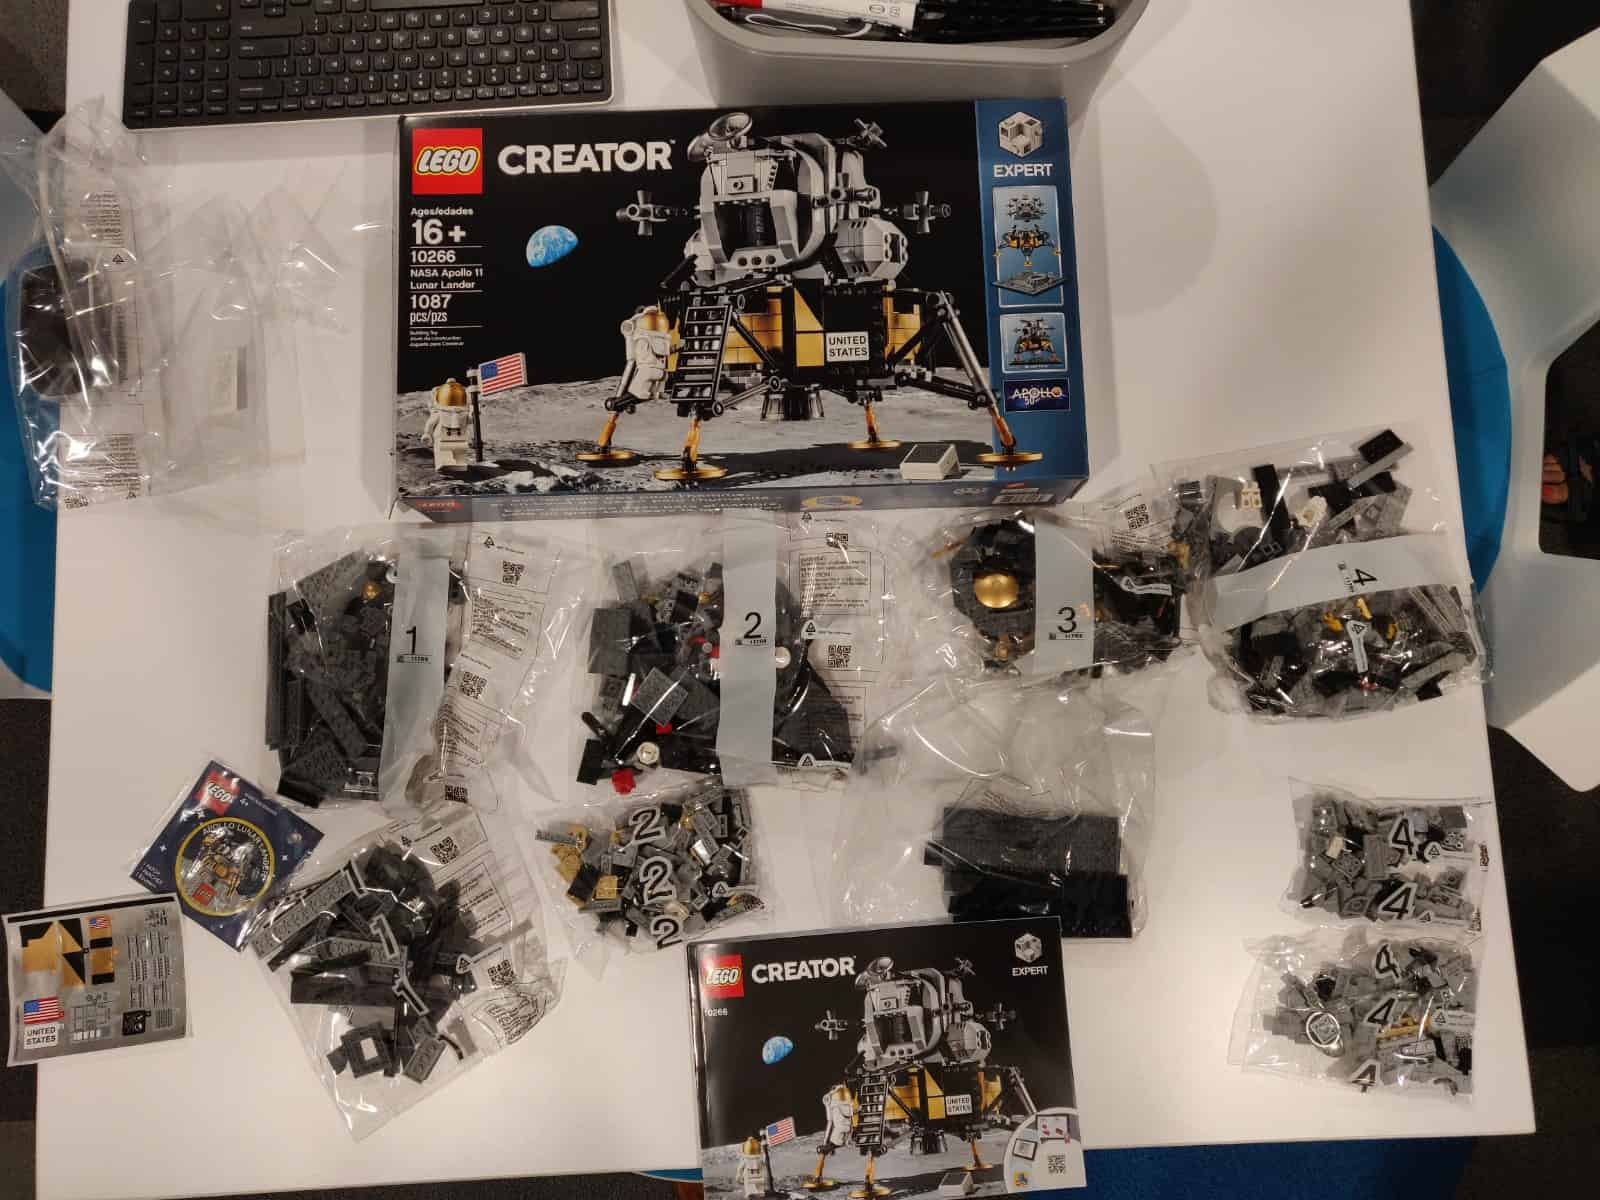 Lego lunar lander parts laid out in bags